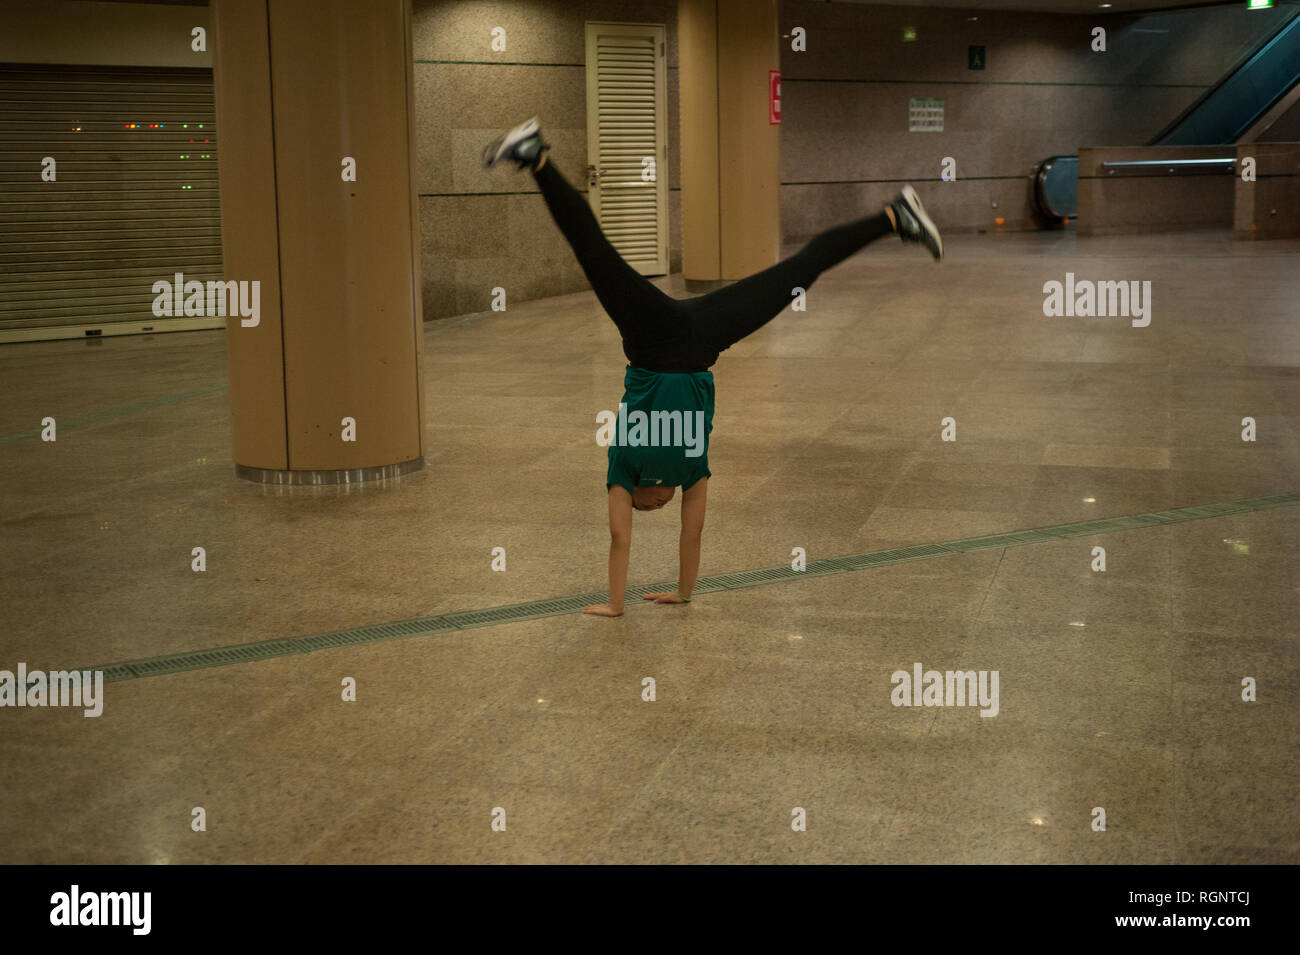 10.02.2018, Singapore, Republic of Singapore, Asia - A young woman is doing a cartwheel in an air-conditioned underpass in Singapore's city centre. - Stock Image